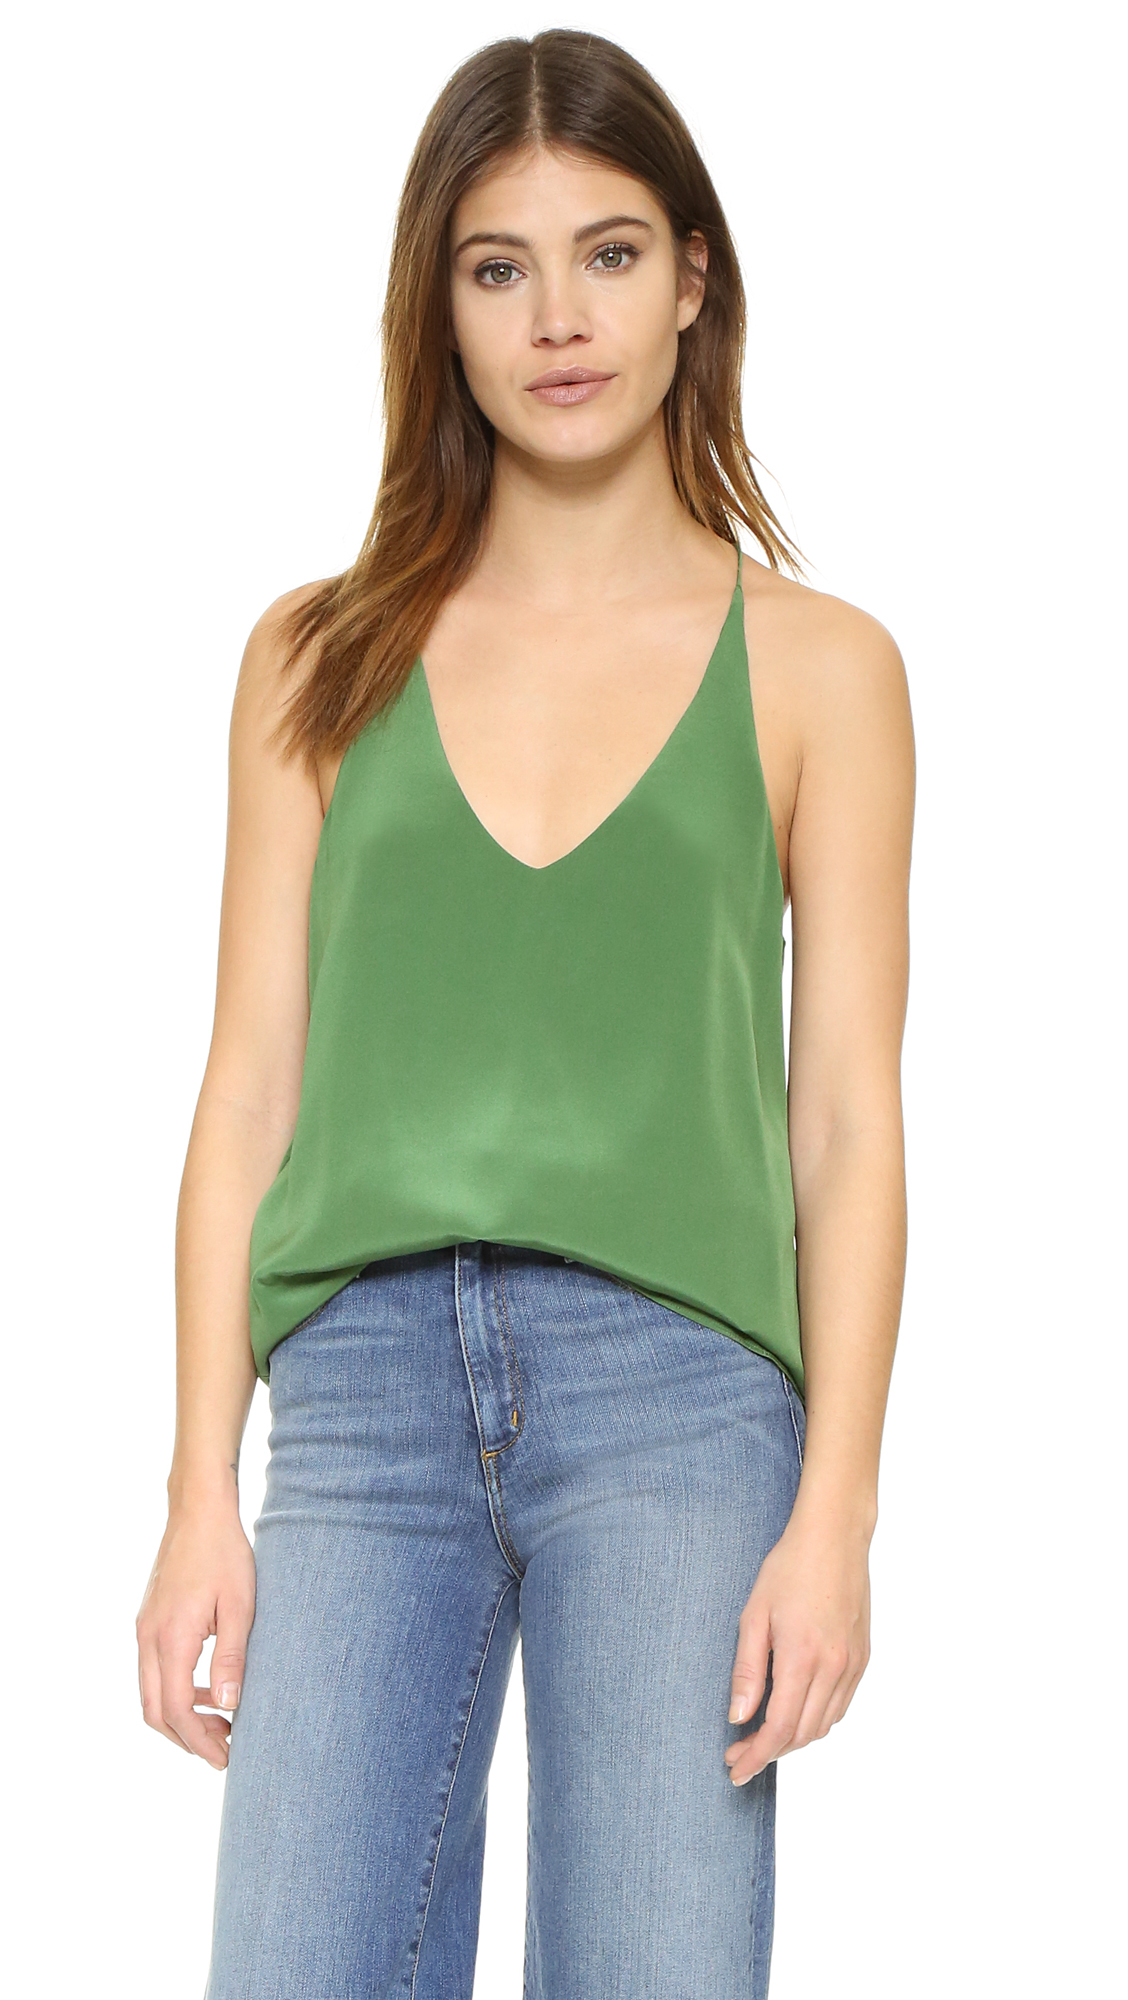 Slip Dresses Shop the essential slip dresses that are trending right now, from current cami trends to cold shoulder and metallic styles. Our slip dresses have got your new look covered and we've got plenty of styles to see you through the new season.